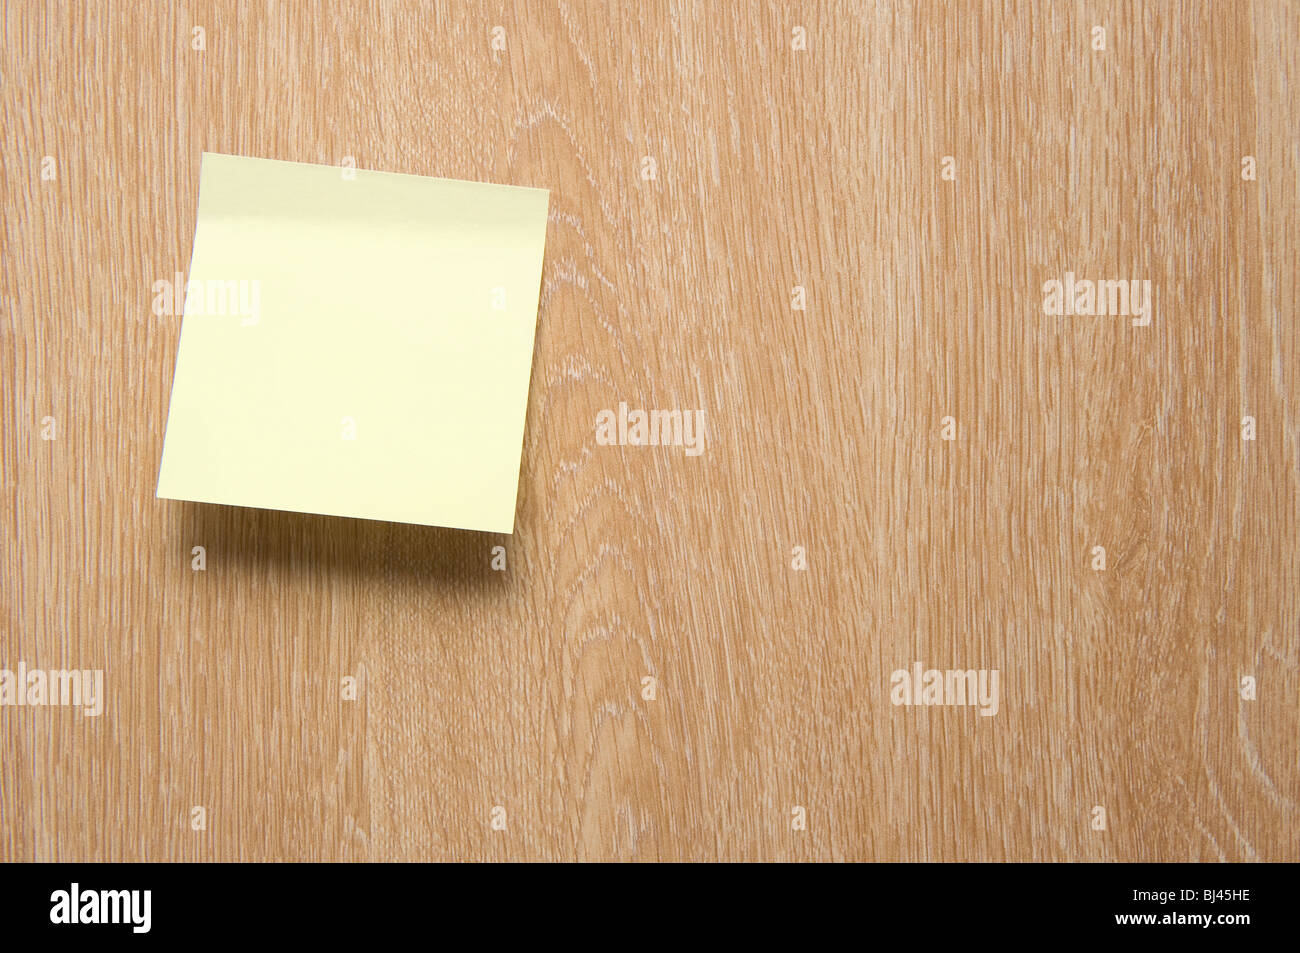 A Blank Yellow Postit Note on a Wooden Door - Stock Image